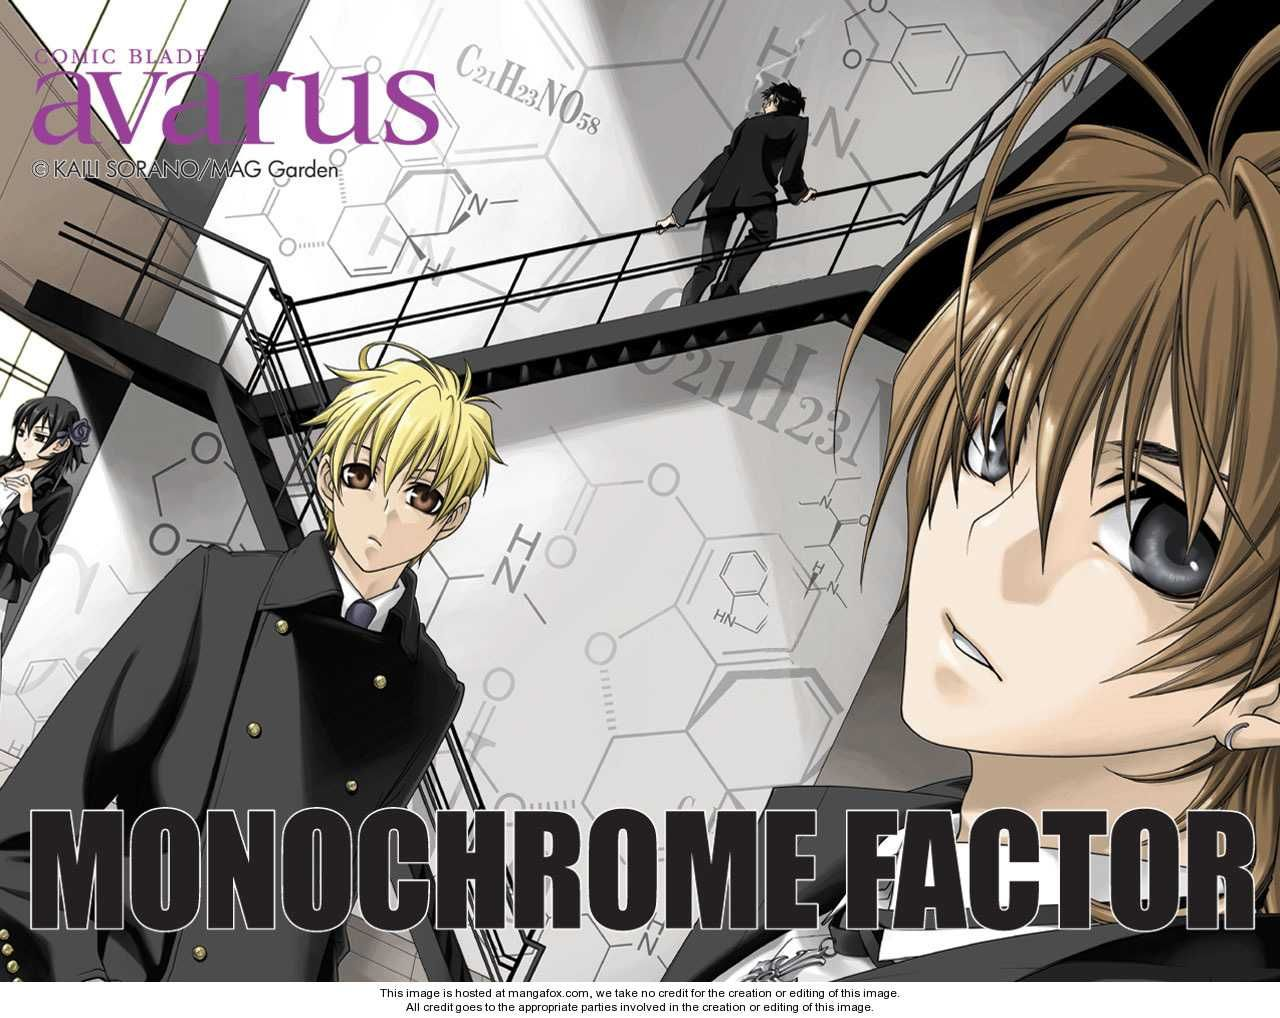 Pin by JJ ) on Monochrome Factor Monochrome, Anime, Factors